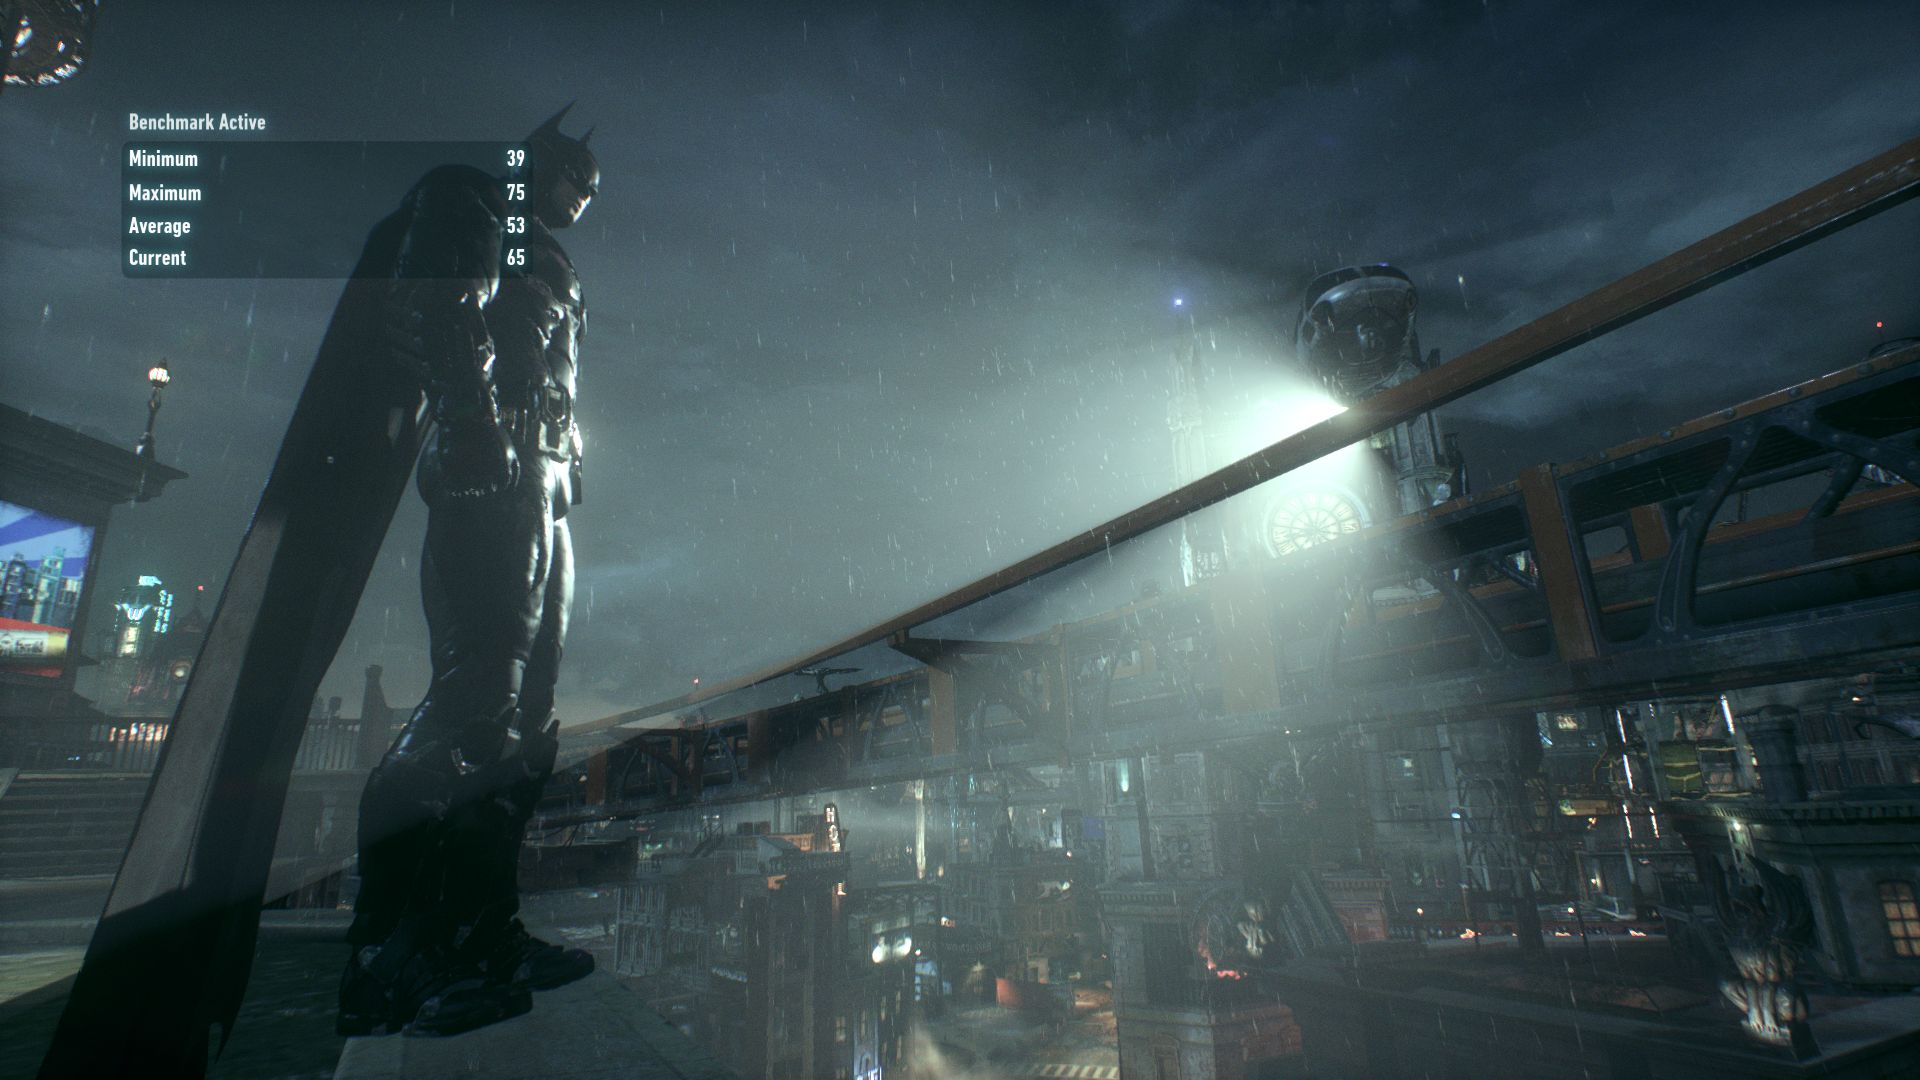 Batman Arkham Knight Notebook Benchmarks Notebookcheck